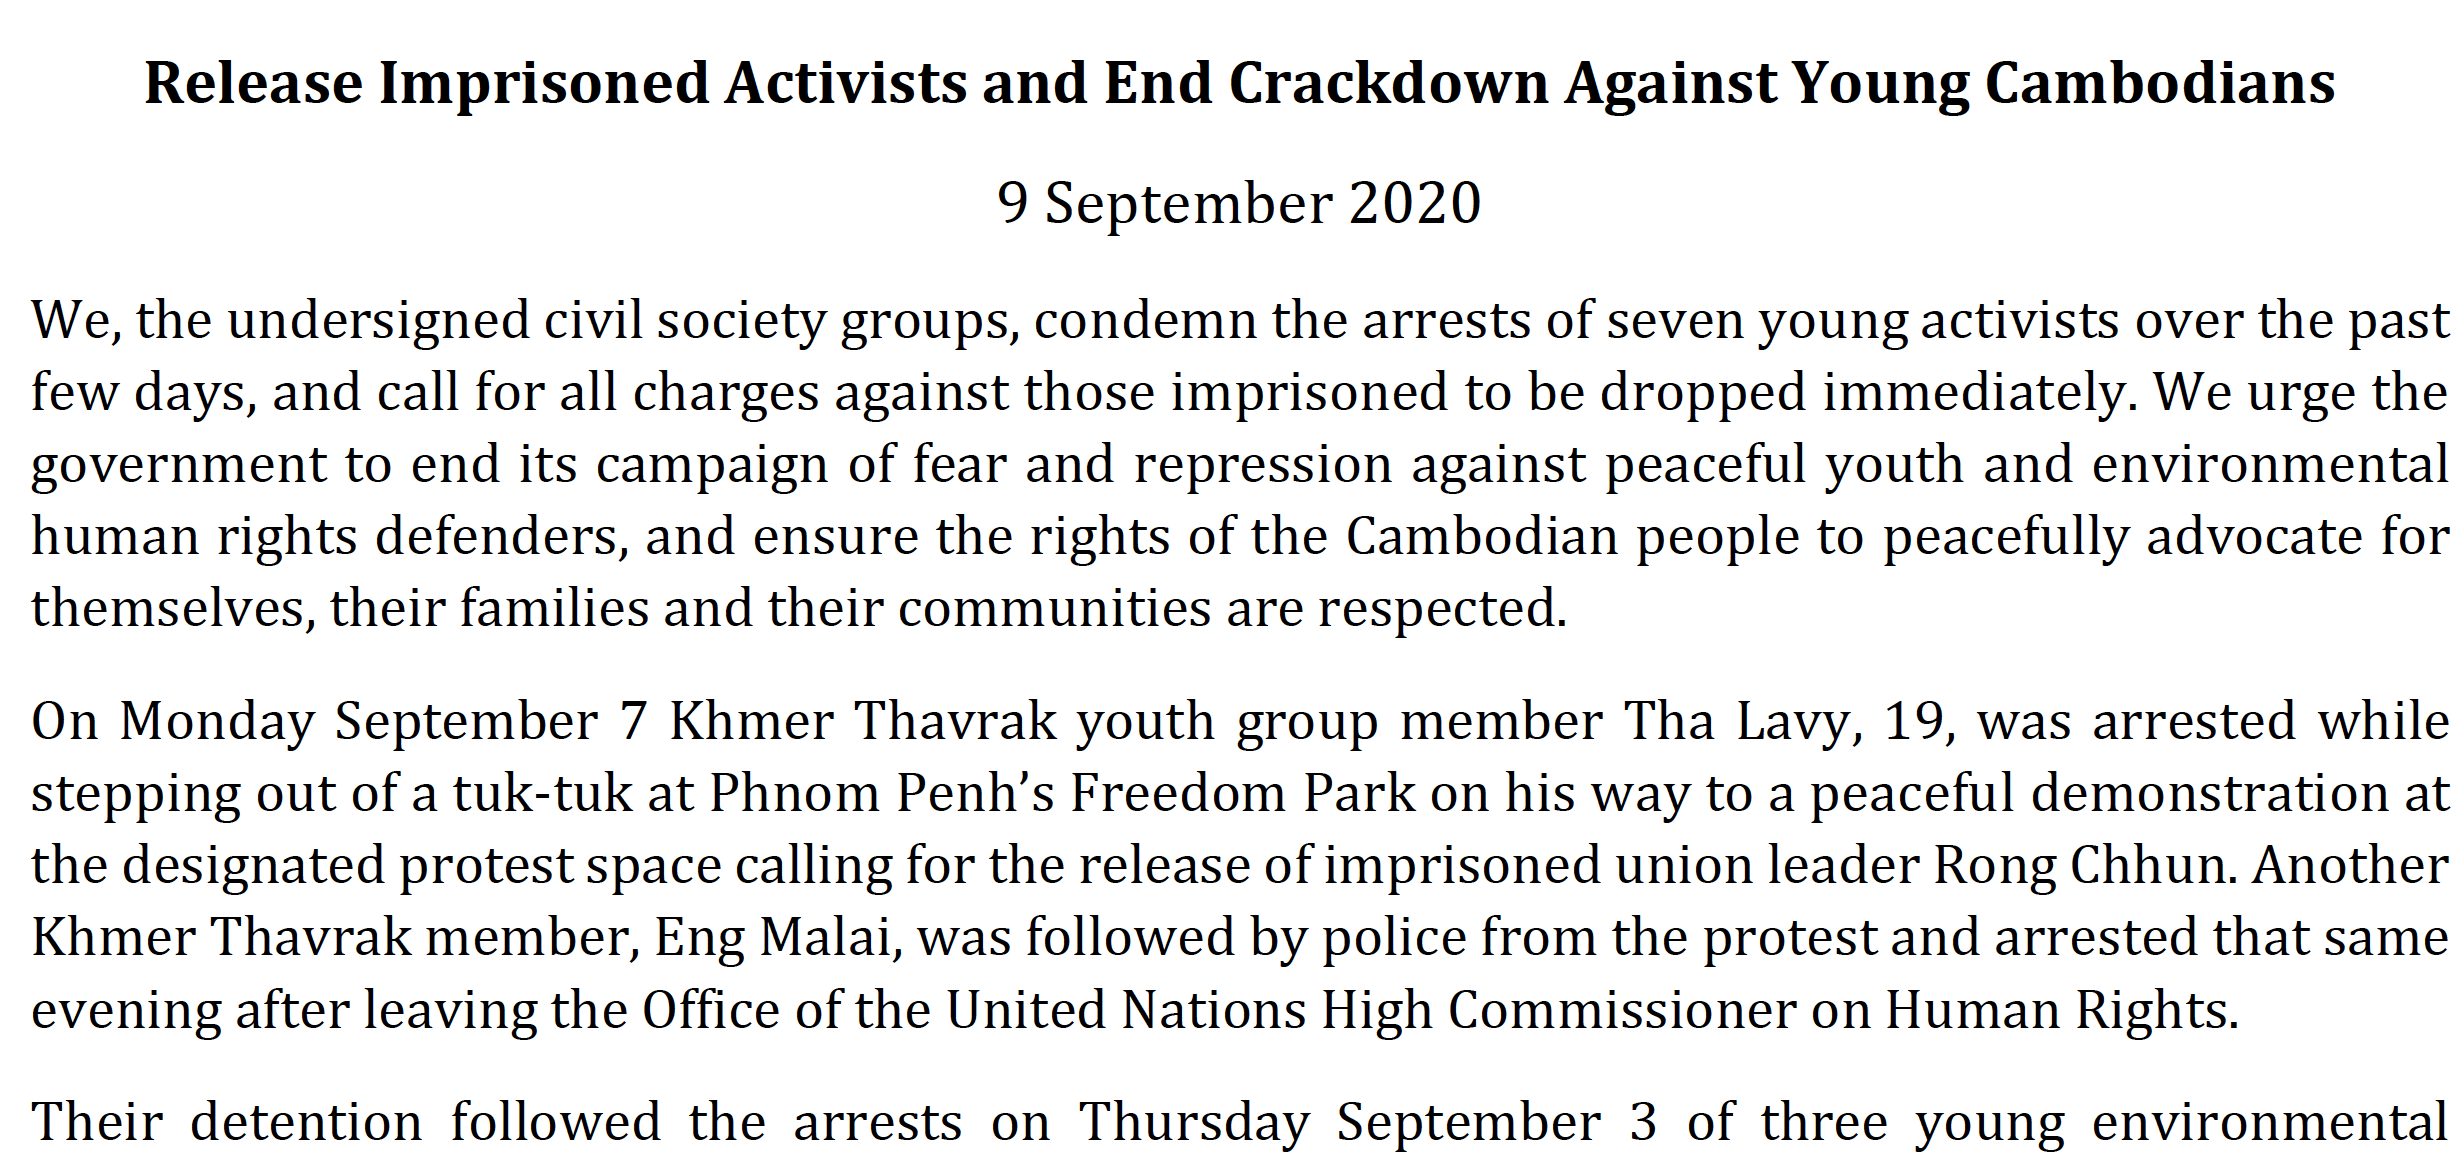 Release Imprisoned Activists and End Crackdown Against Young Cambodians